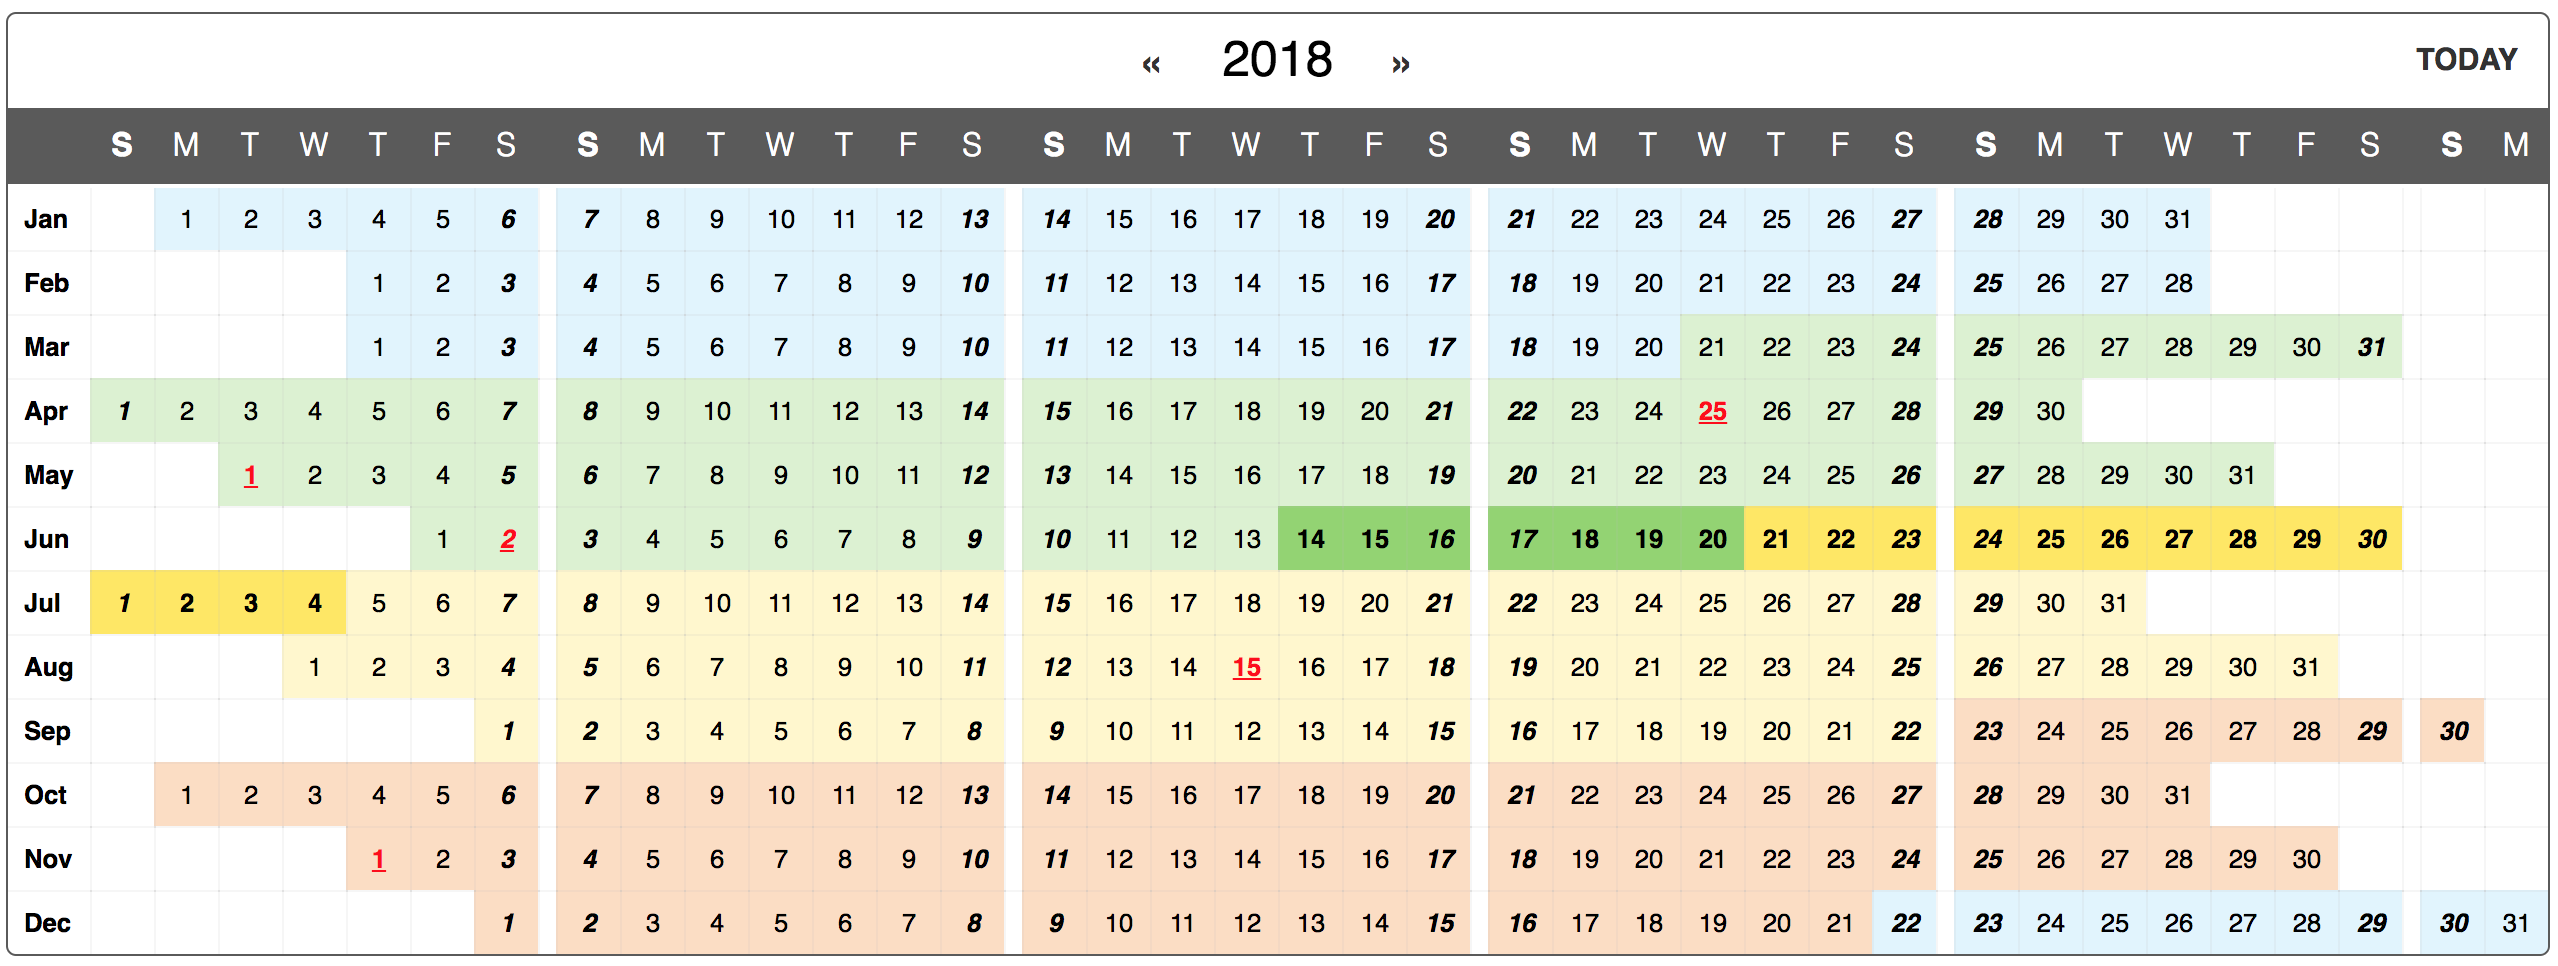 react-yearly-calendar